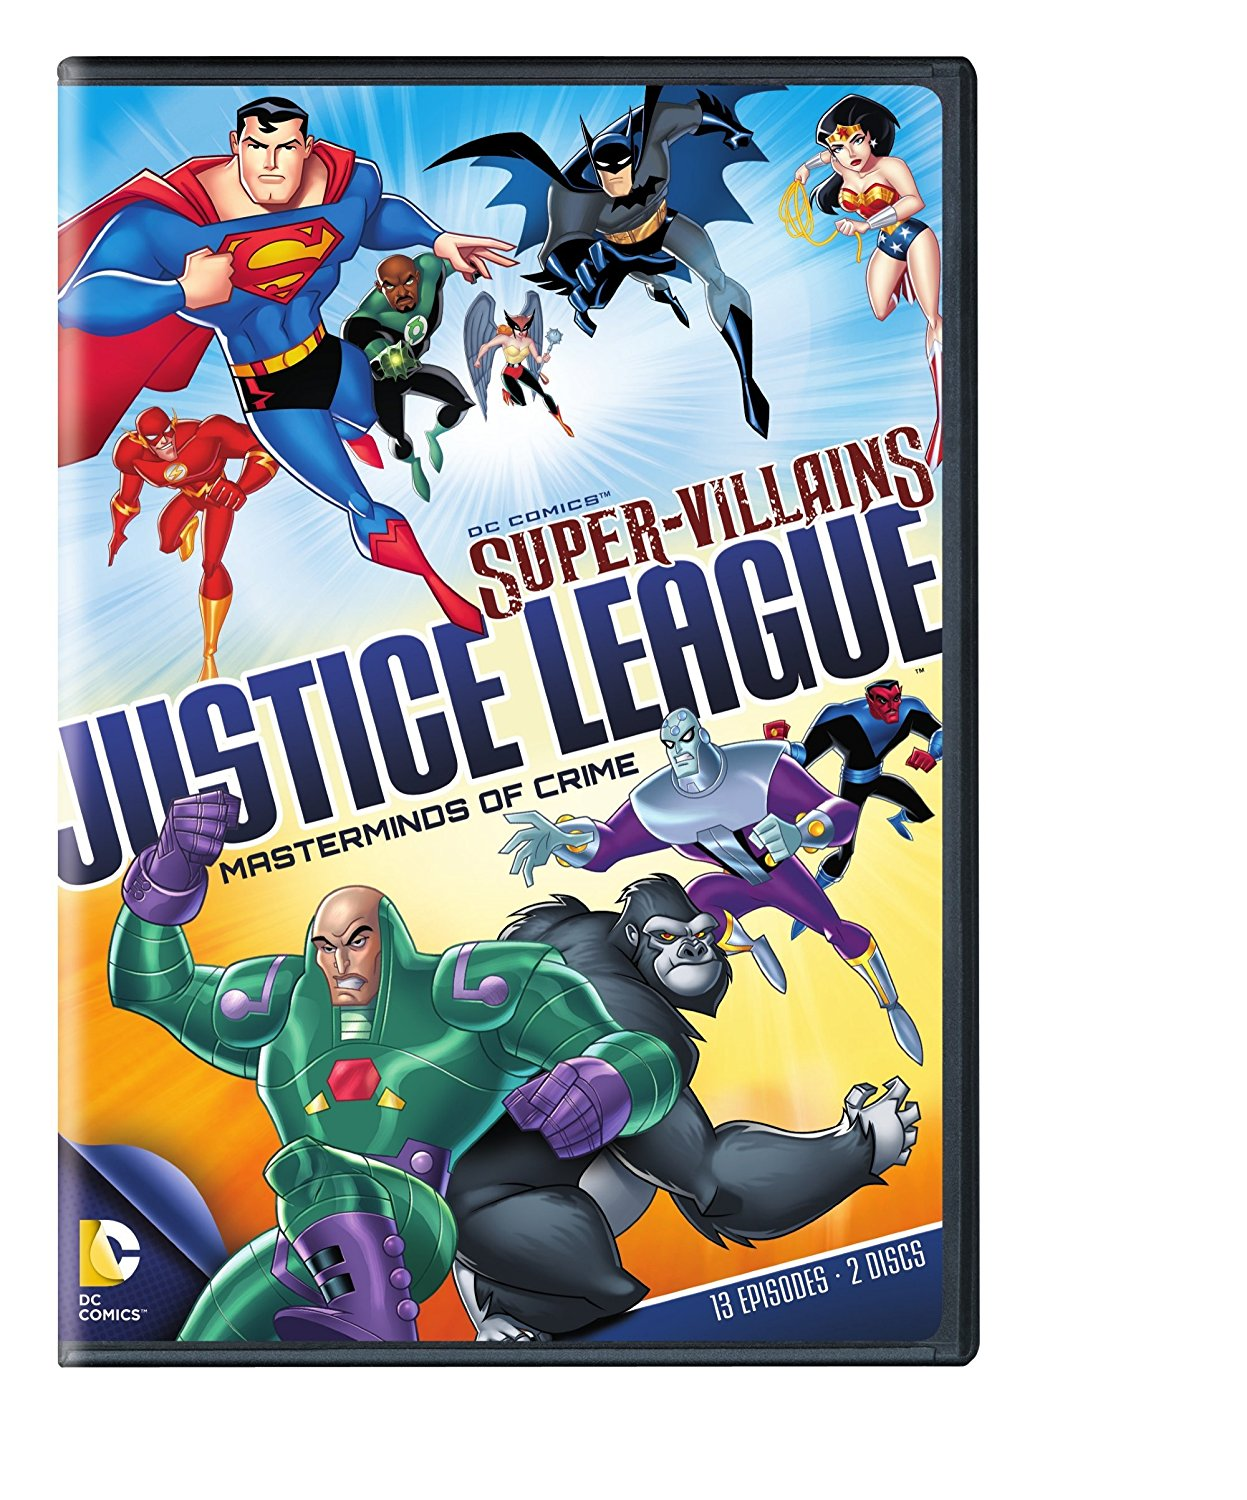 Justice League Super-Villains 1.jpg